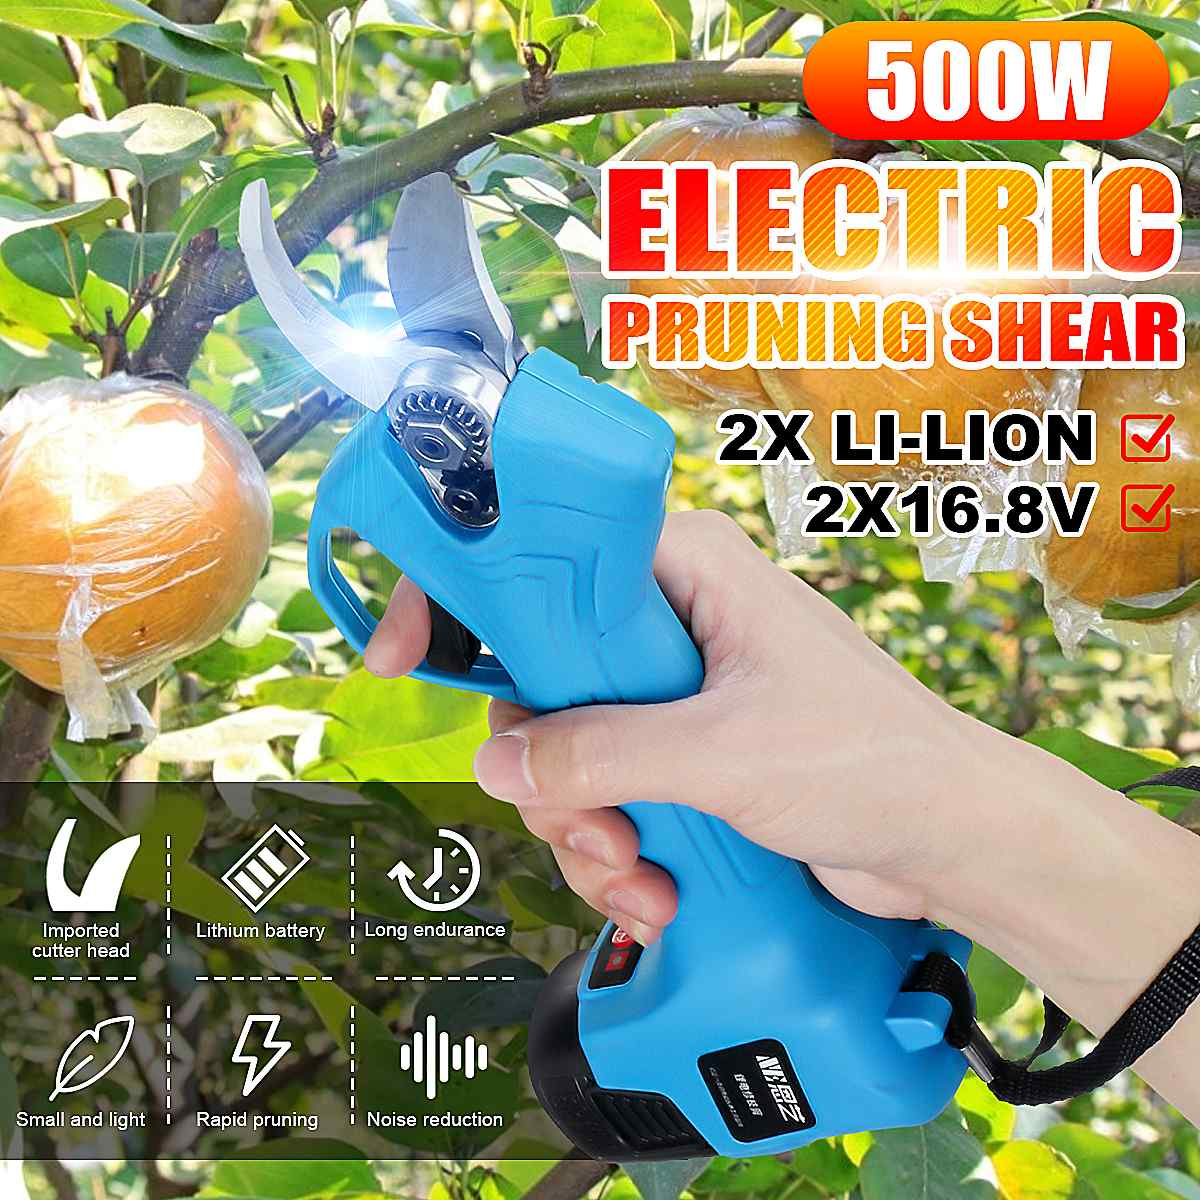 500W 16.8V Wireless Electric Rechargeable Scissors Pruning Shears Tree Garden Tool Branches Pruning Tools W/ 2 Li-ion Battery